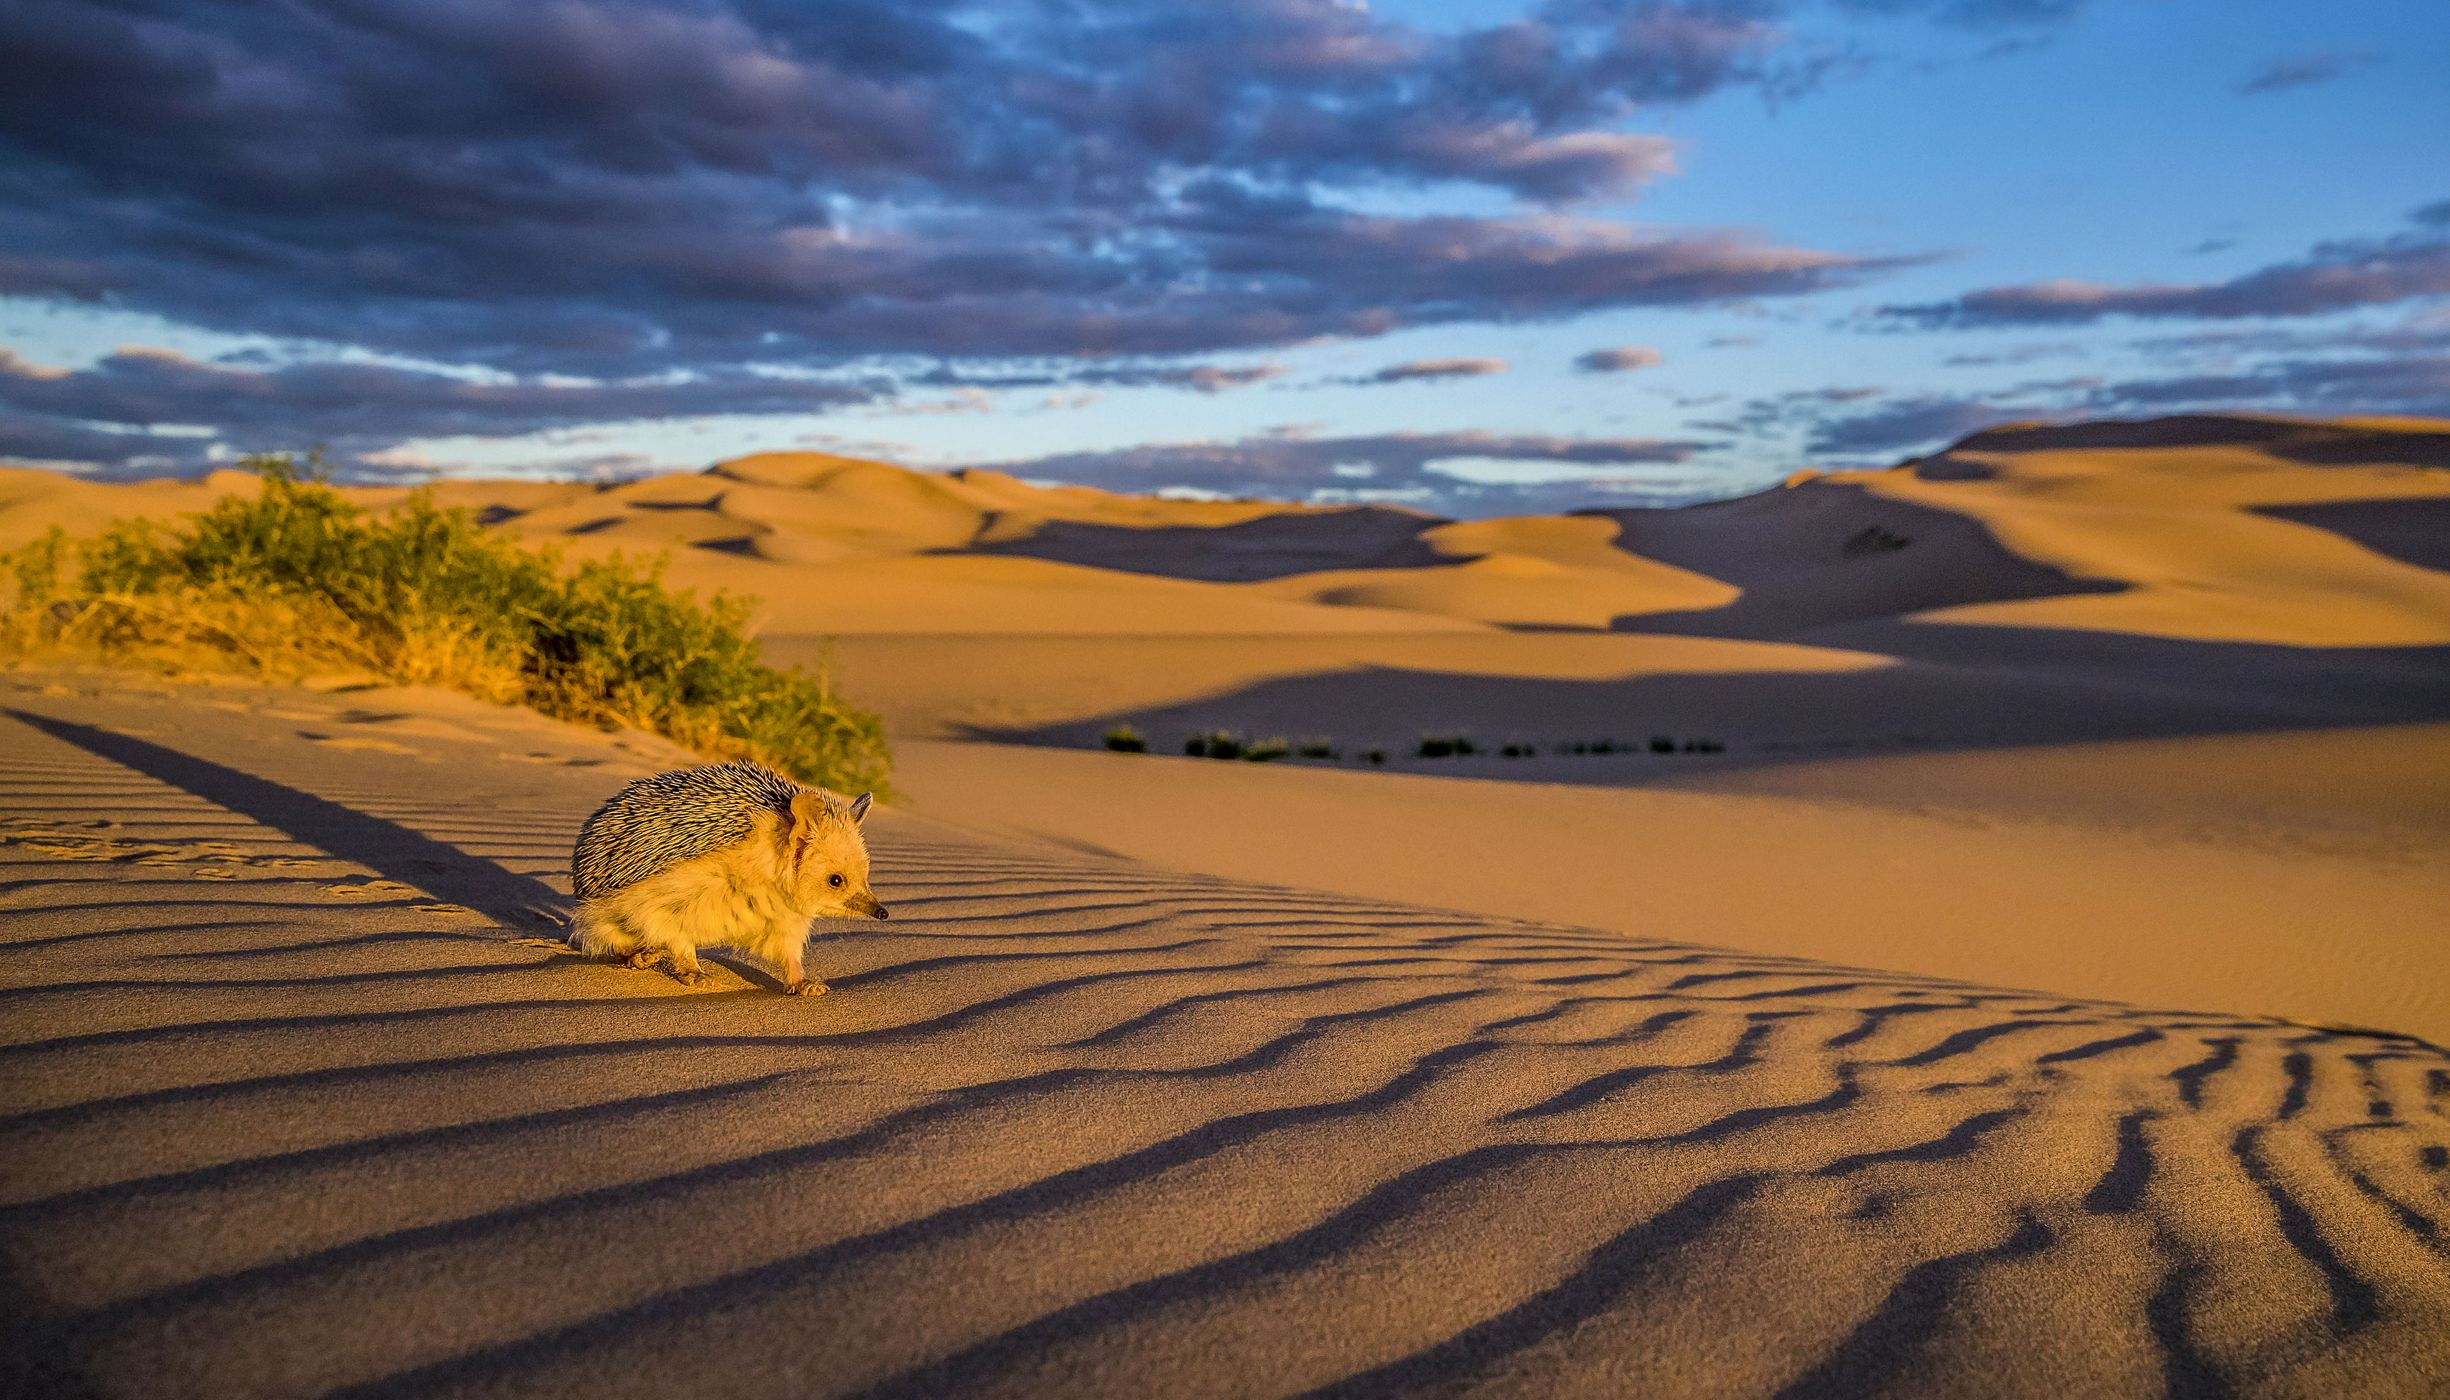 A long-eared hedgehog on a sand dune in the Gobi Desert